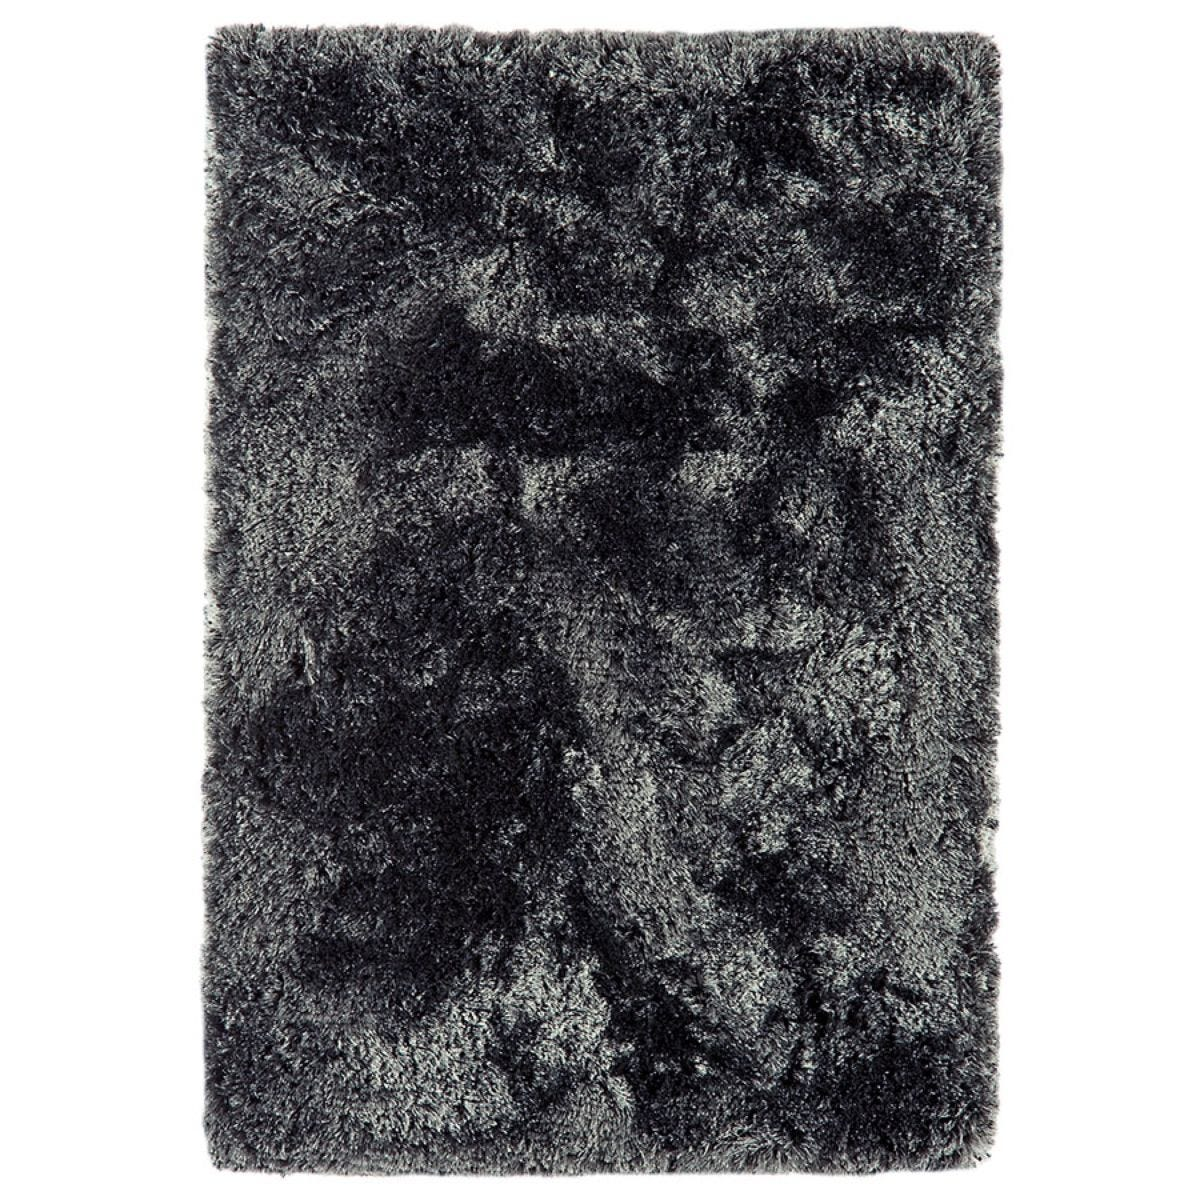 Asiatic Plush Shaggy Rug, 140 x 200cm - Slate